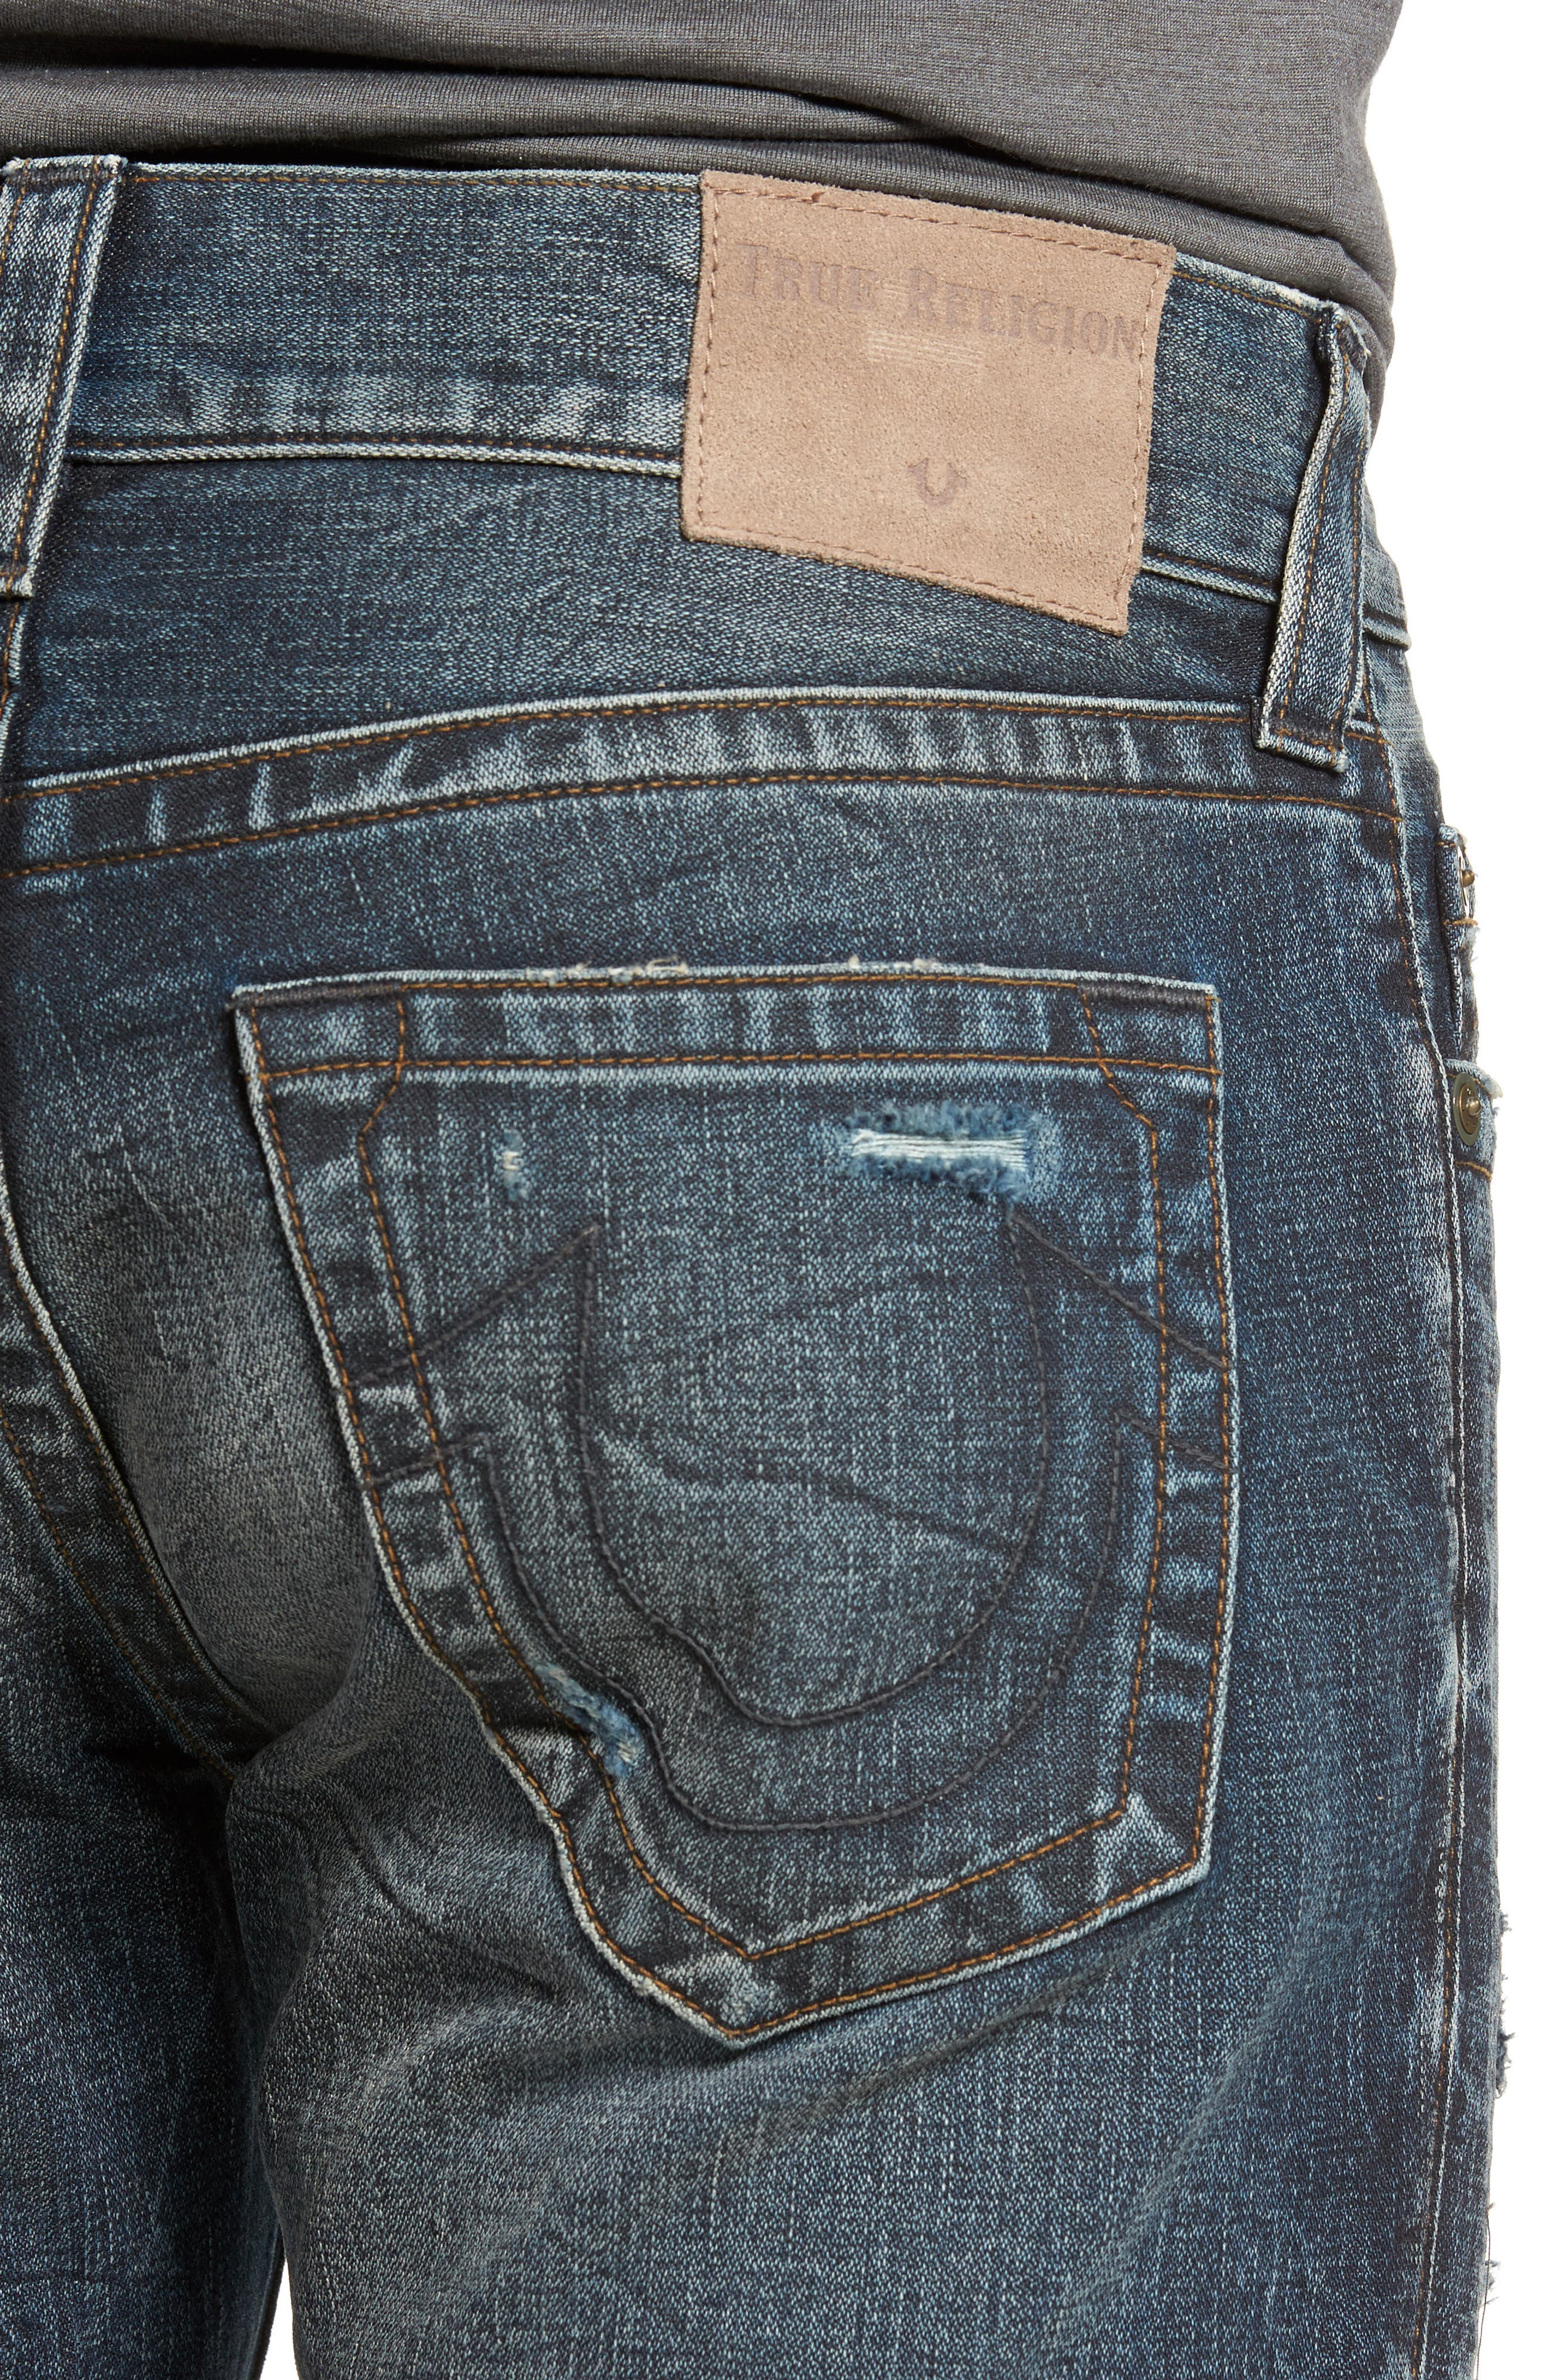 Geno Straight Fit Jeans,                             Alternate thumbnail 4, color,                             Patched Rider